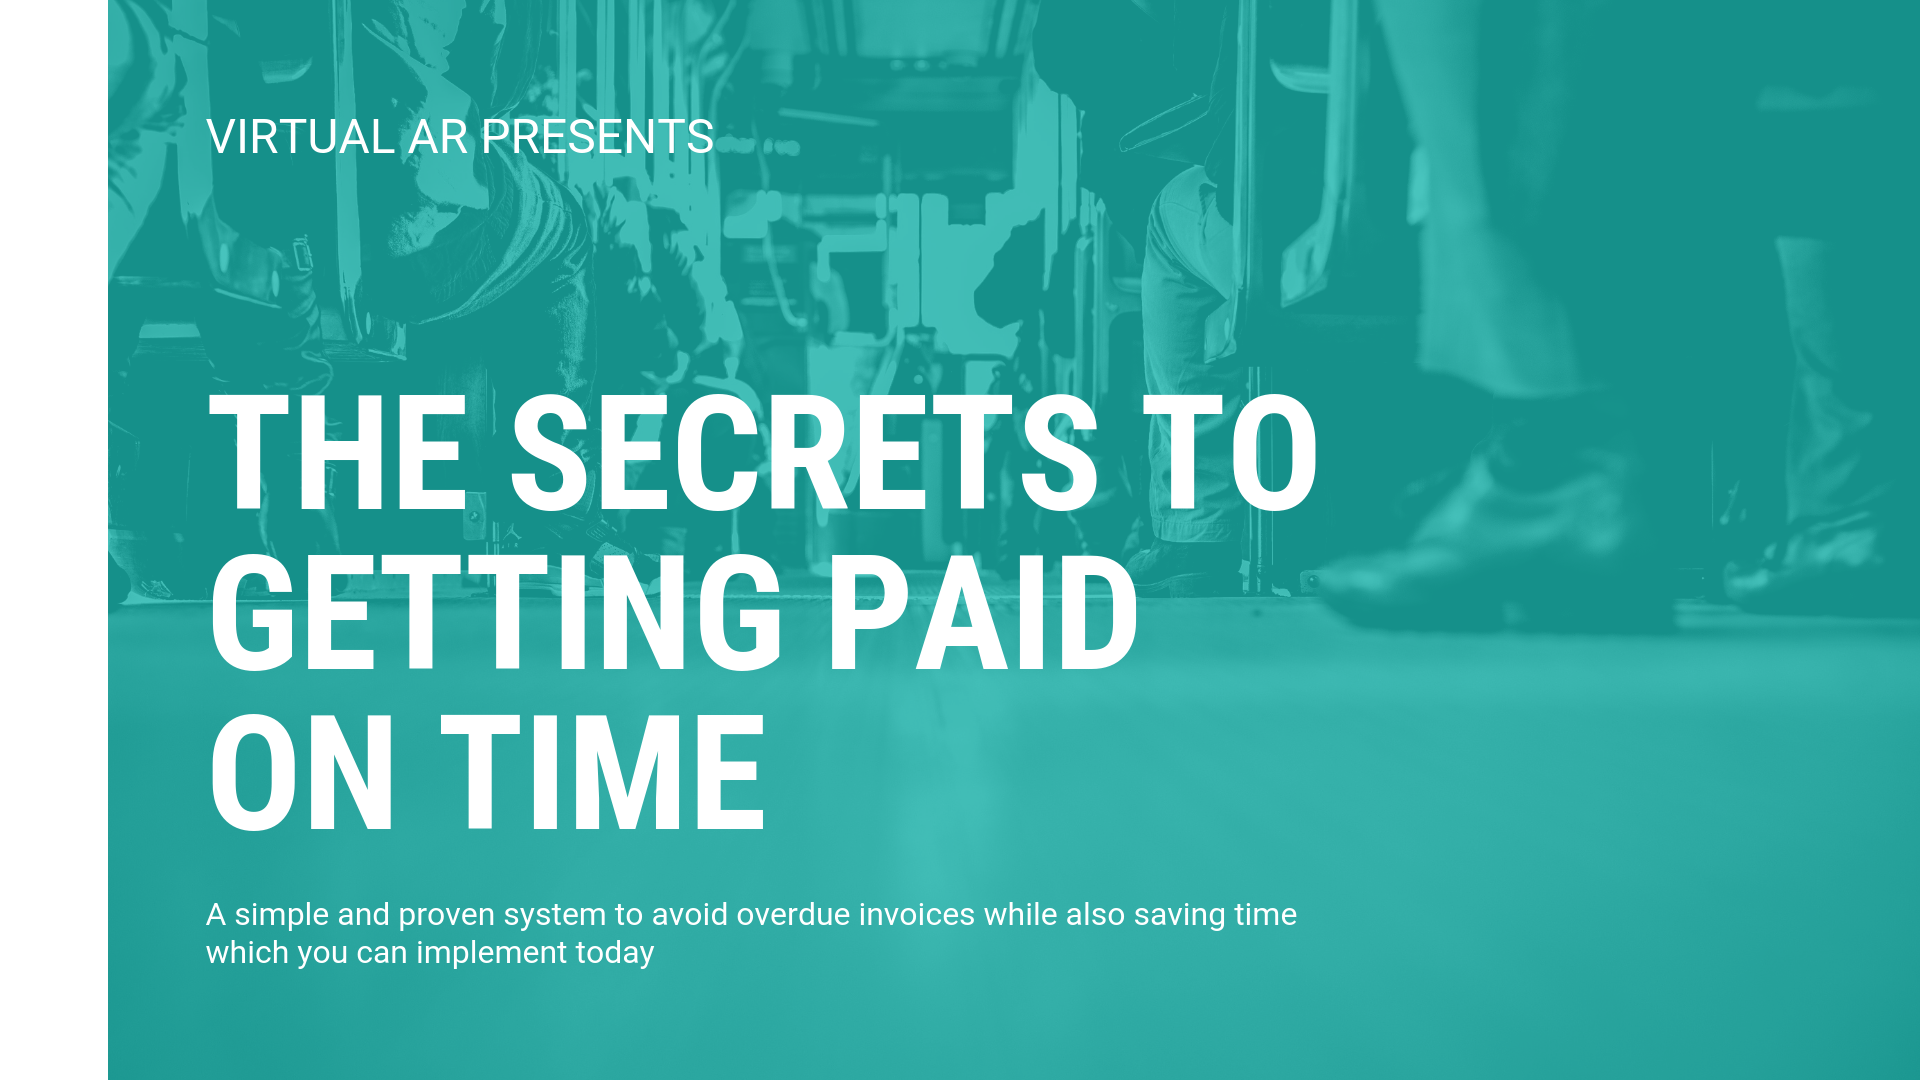 Getpaid ontime